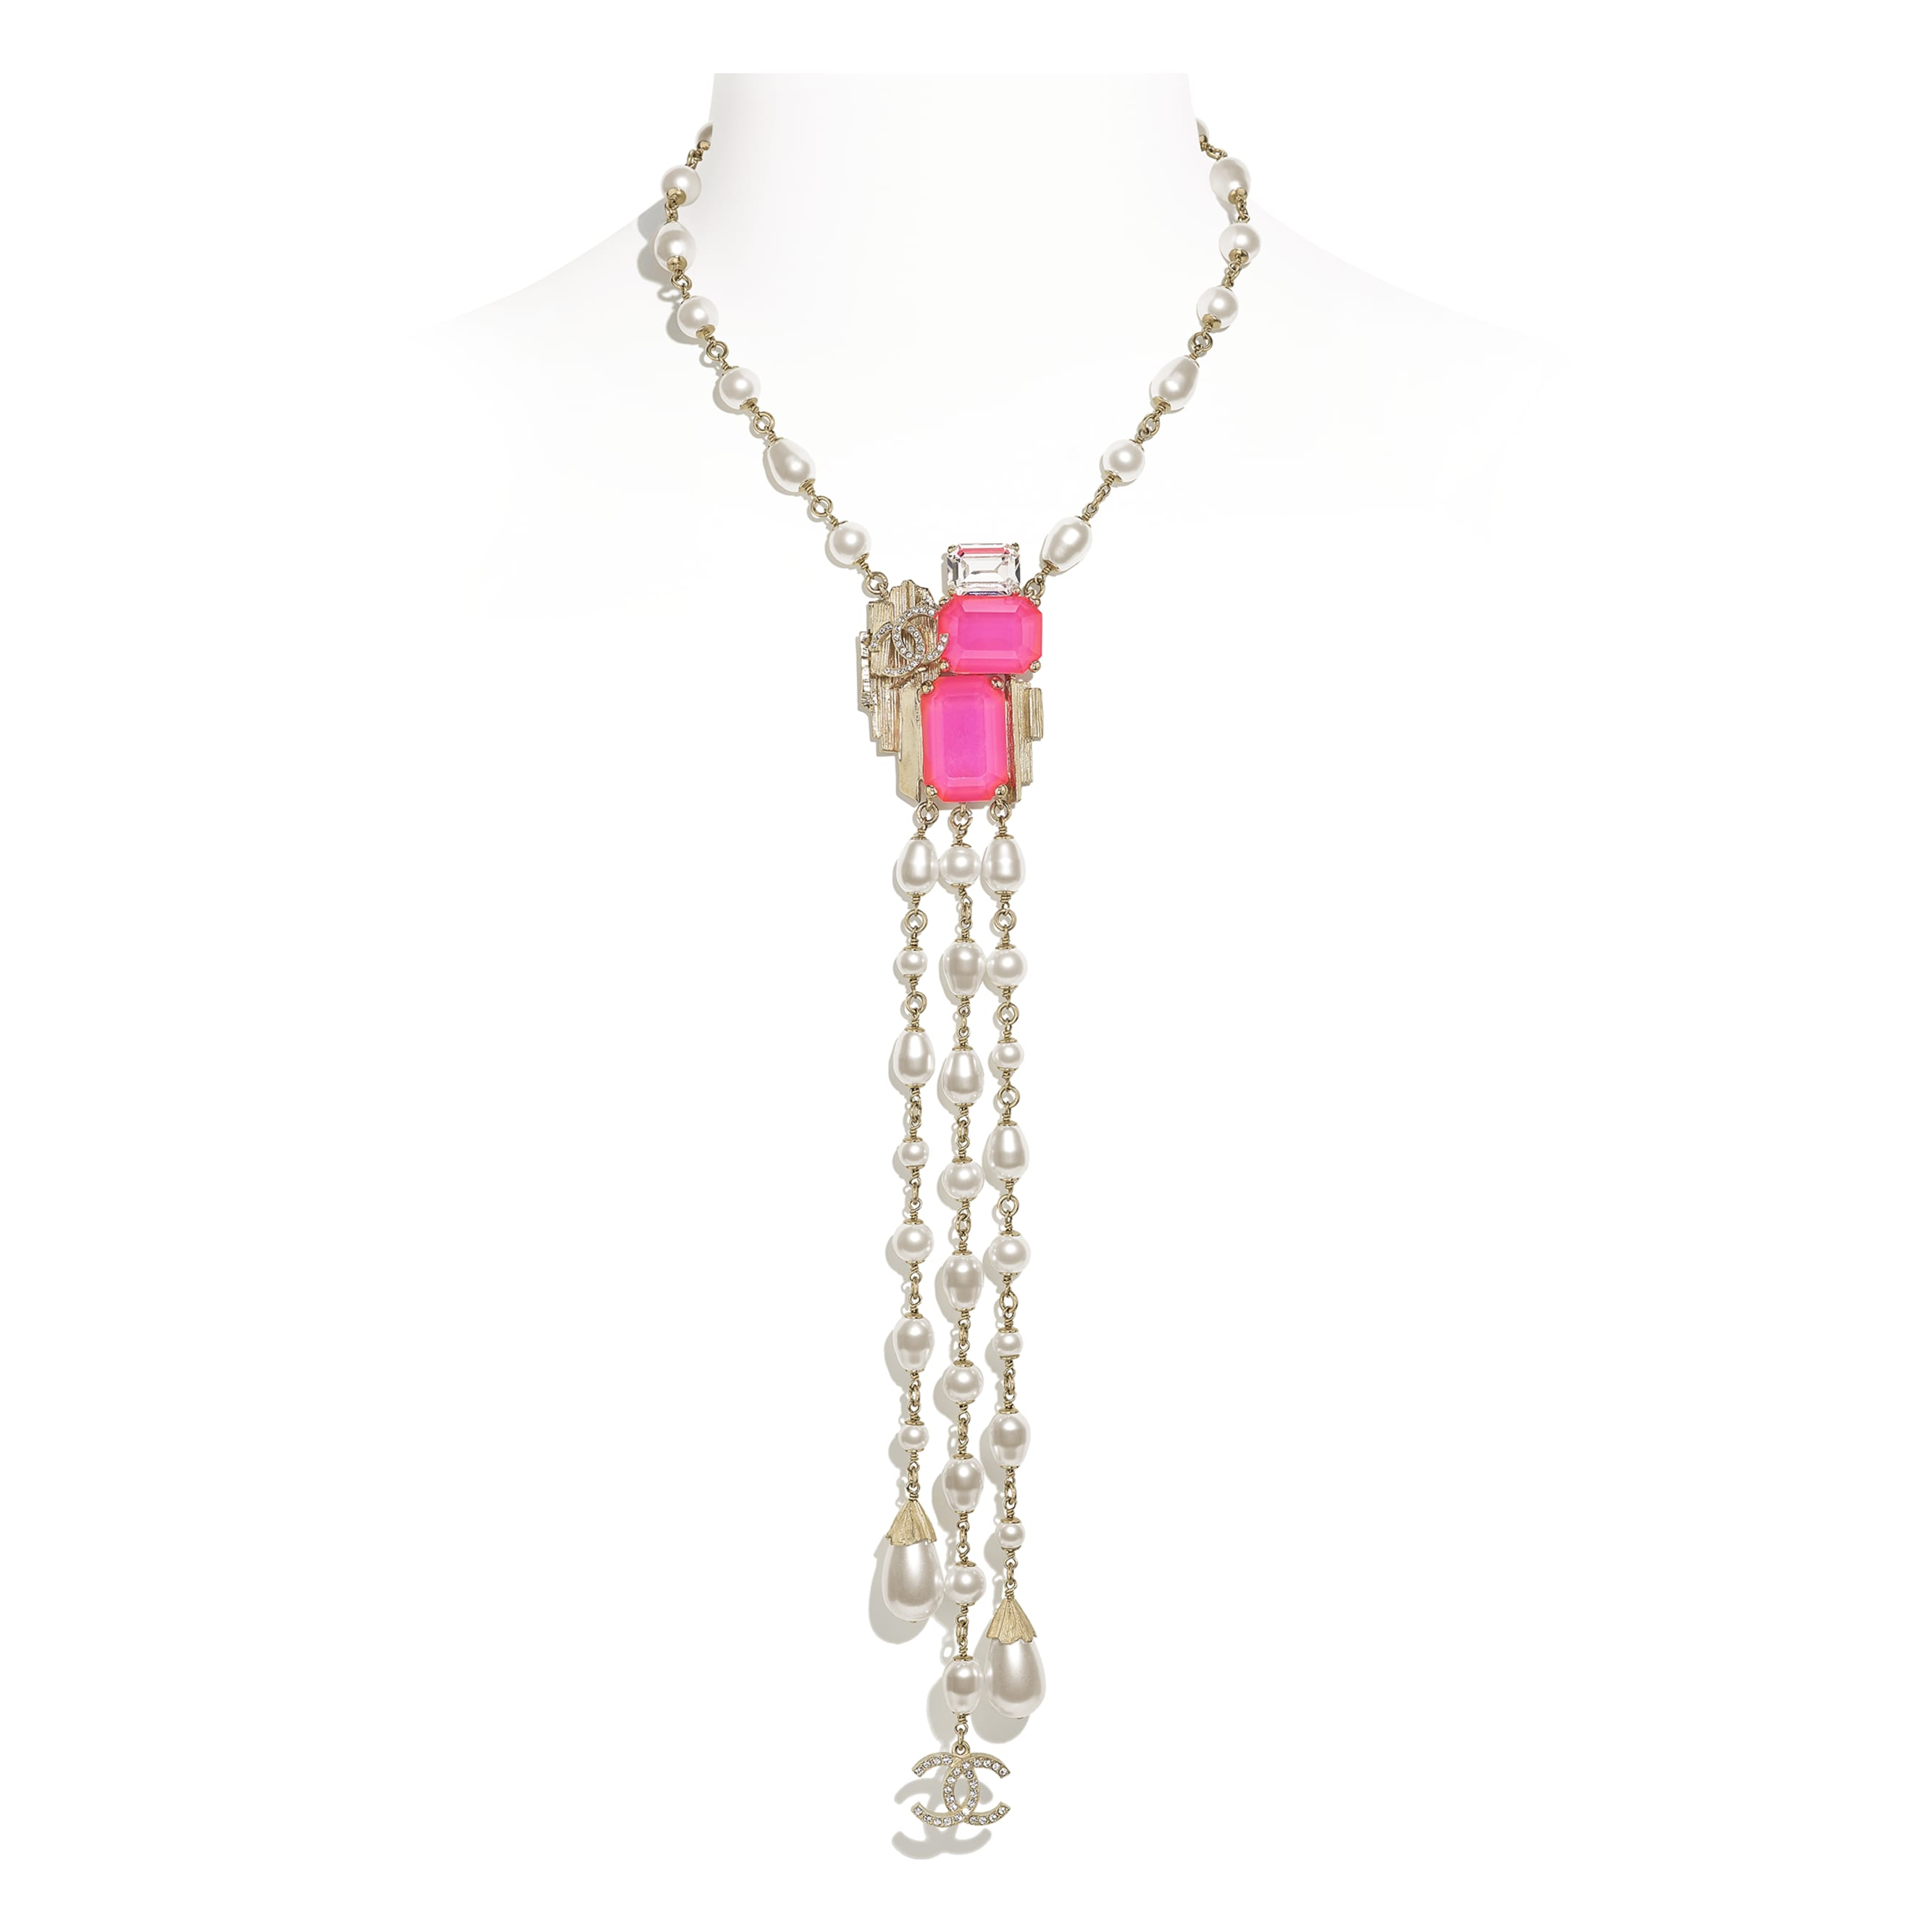 Necklace - Gold, Pink & Pearly White - Metal, Glass Pearls, Imitation Pearls & Diamanté - CHANEL - Default view - see standard sized version